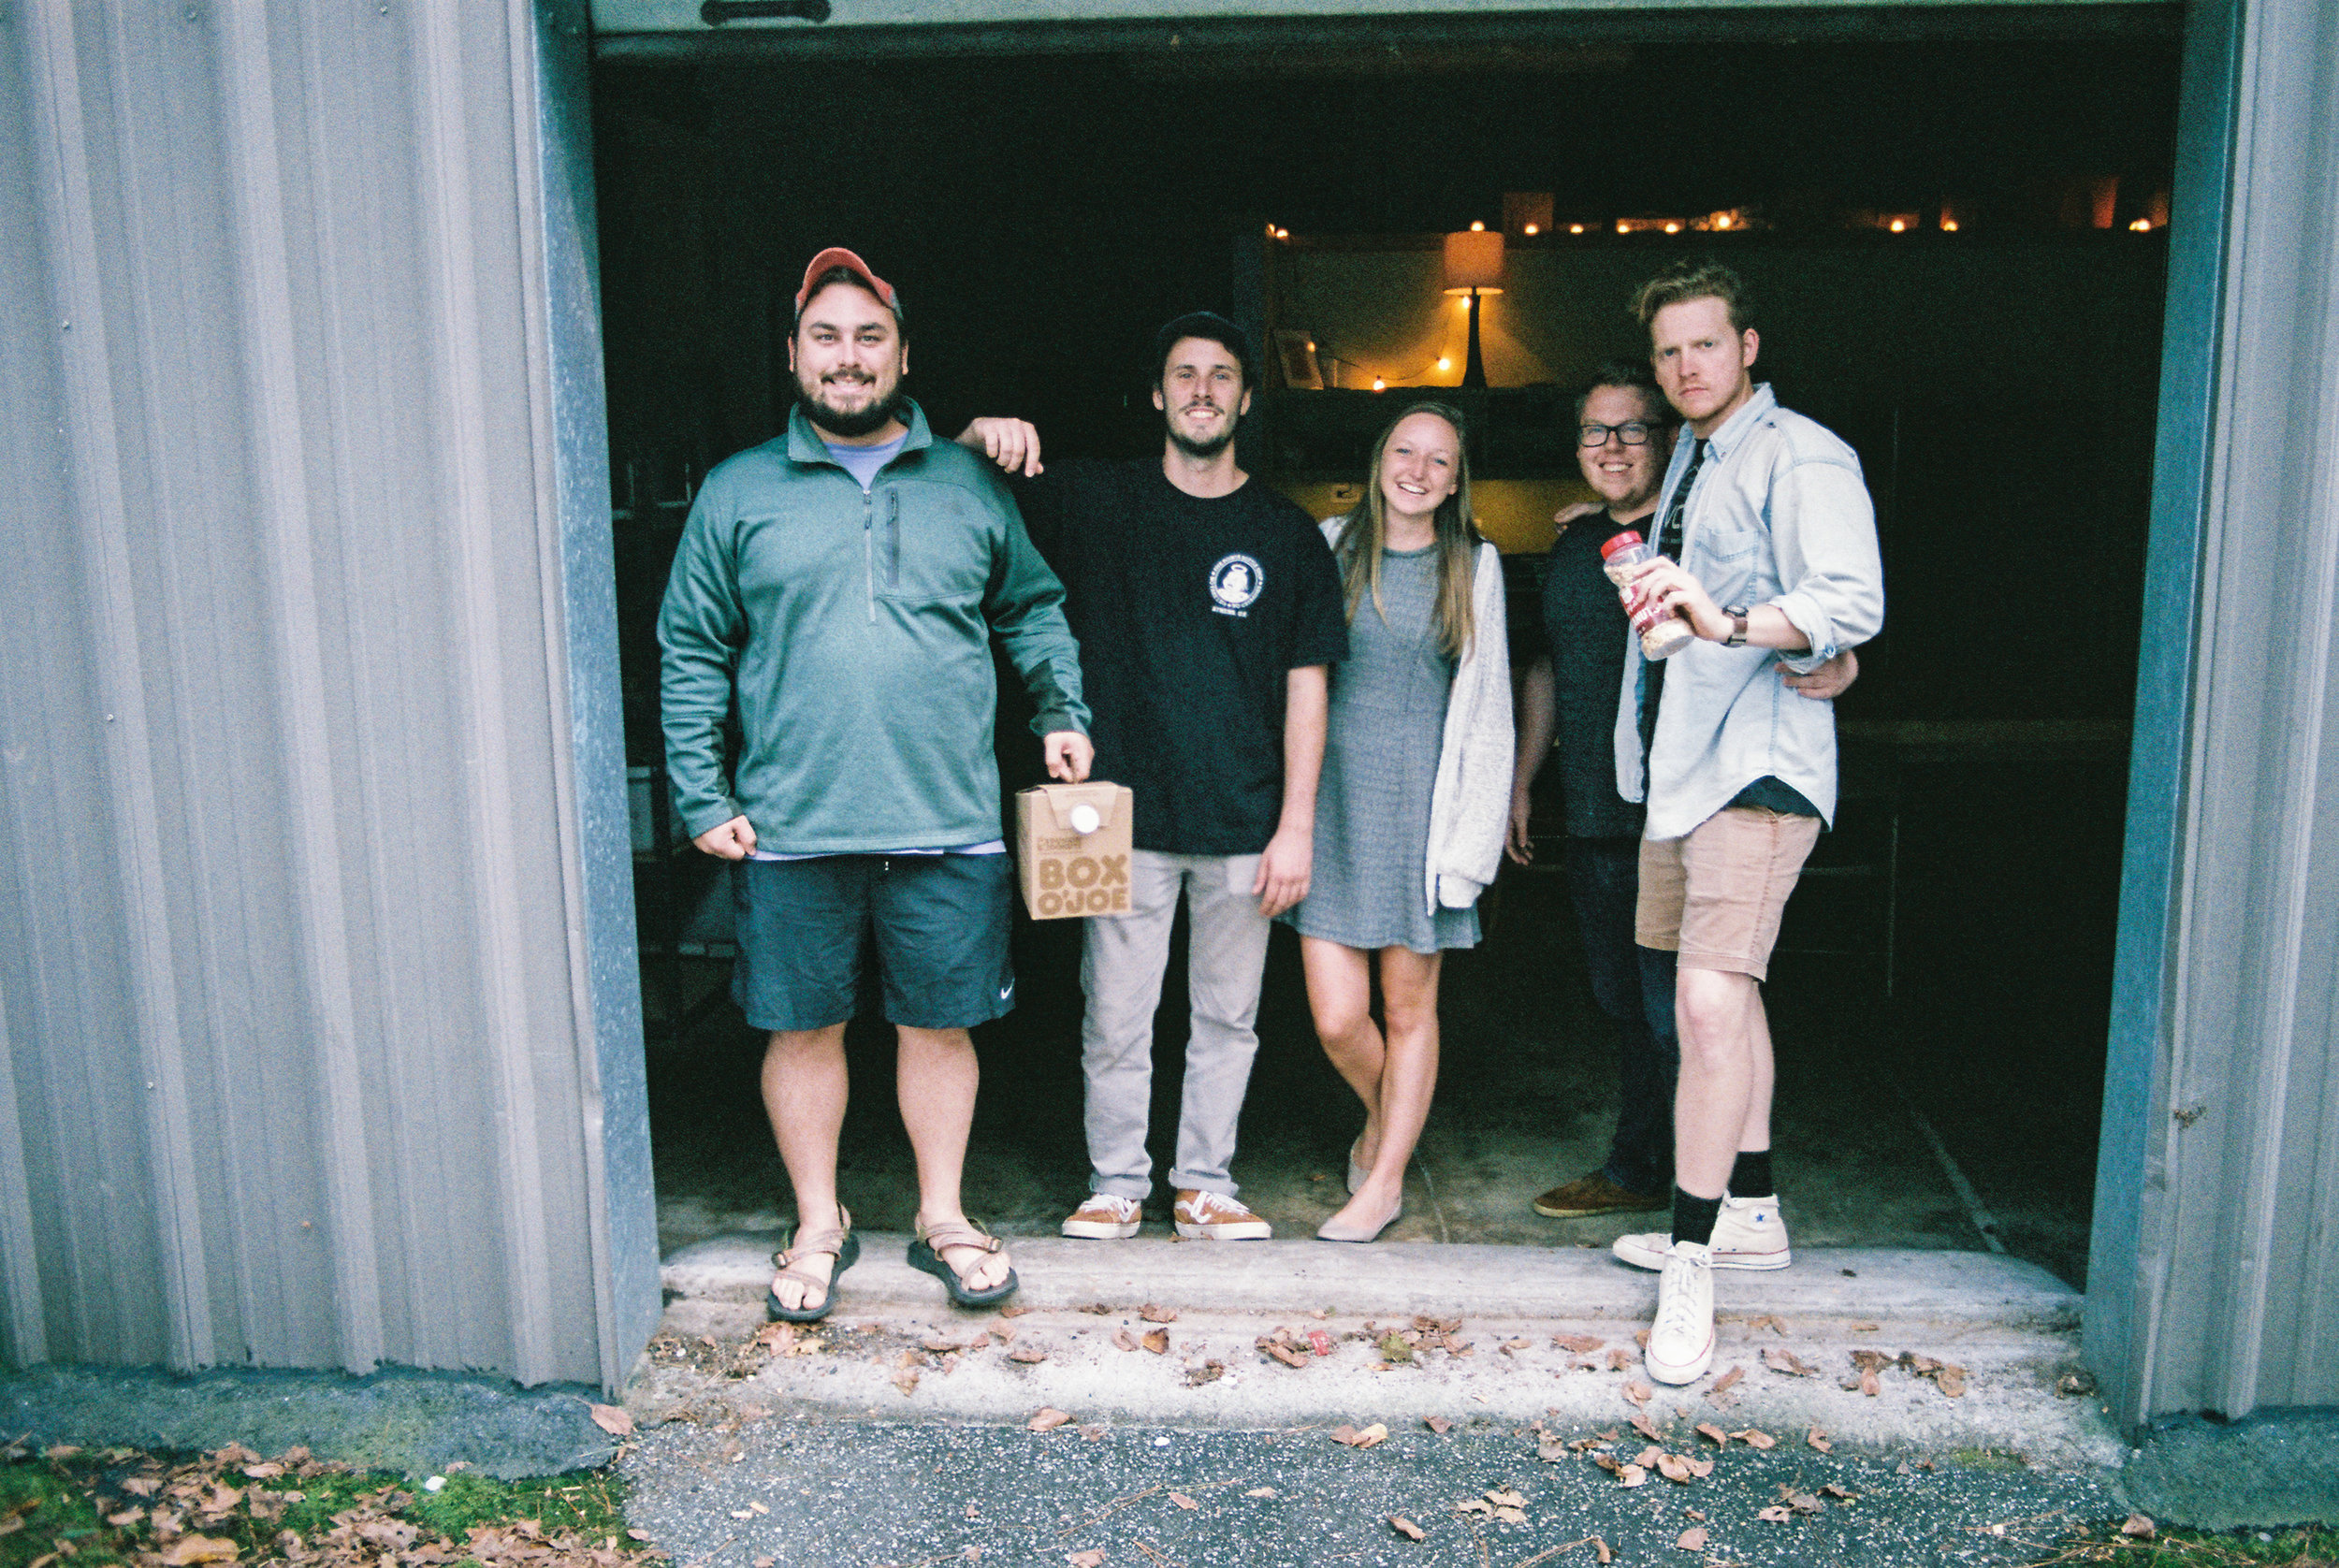 - This is the back of Chase Park, where we tracked pianos, drums and bass and some of the guitars. pictured are Brian (drums) Will and Holly our interns, Drew (Bass) and Bobby (voice). I remember that we played football in the back this day to take a break from the project. playing football with 5 people is really hard